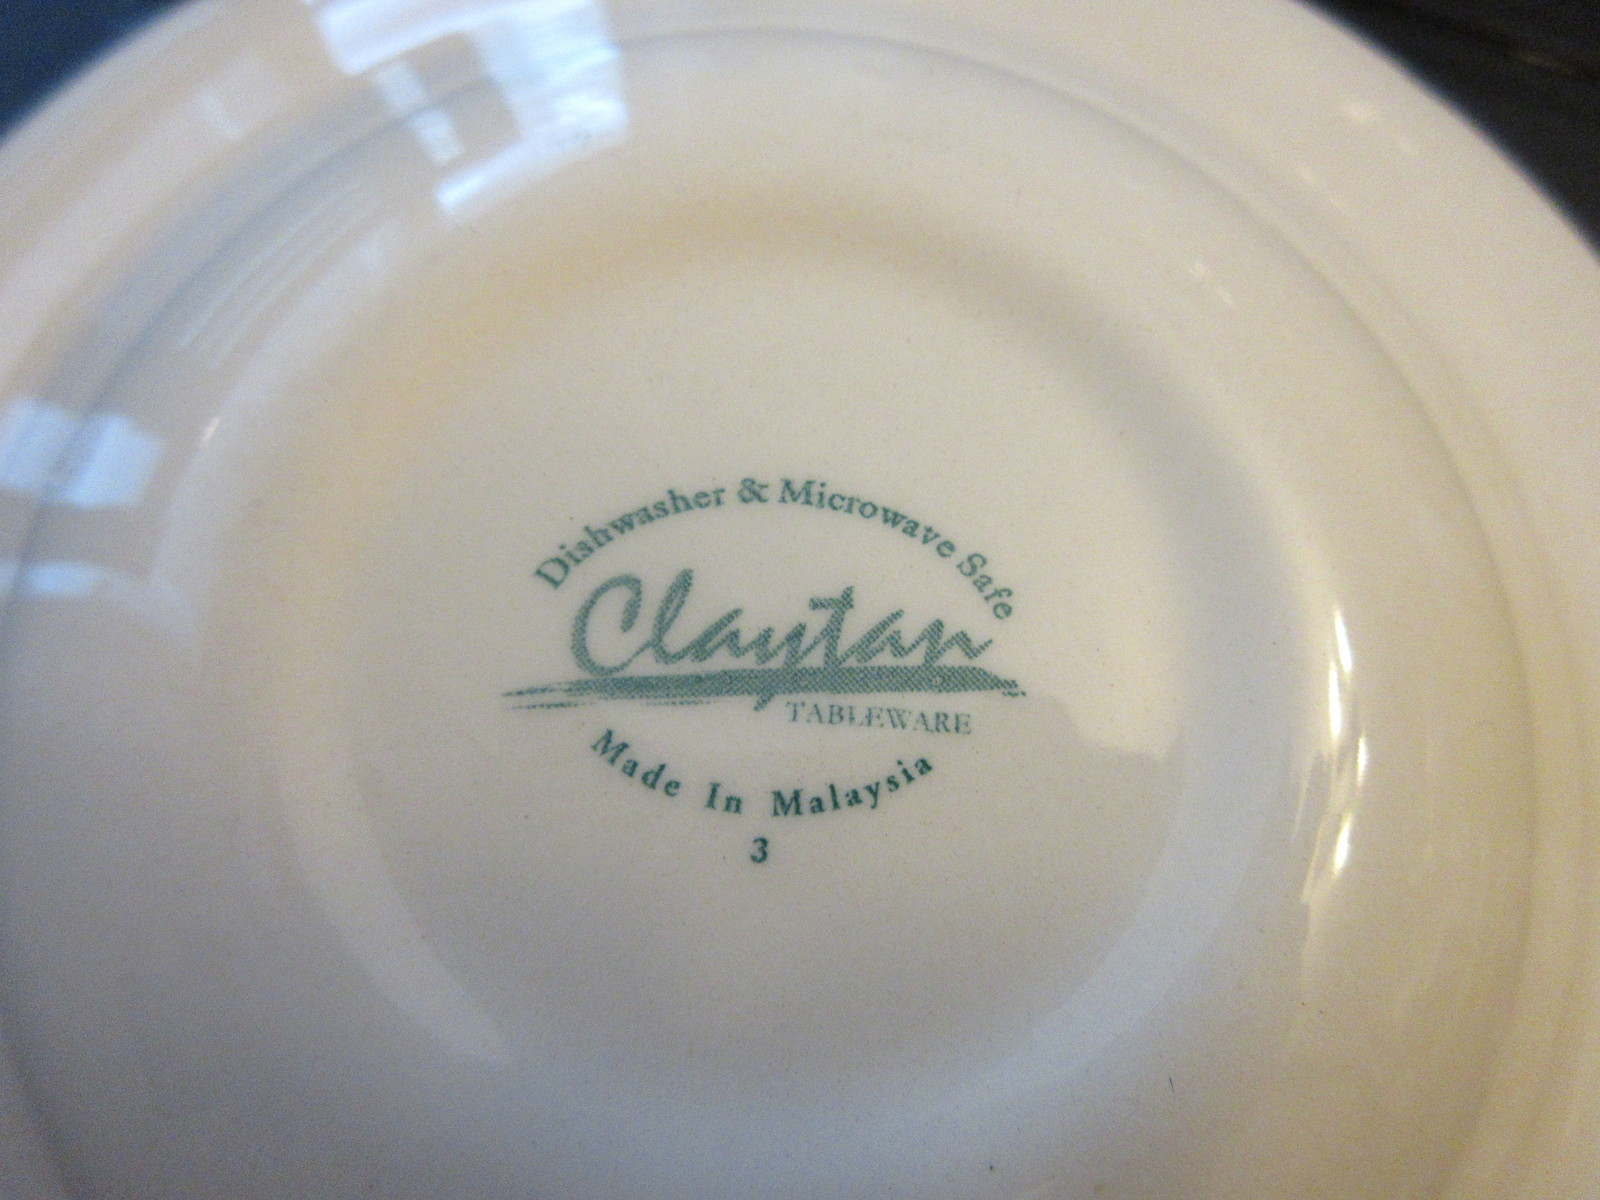 ... Claytan Tableware made in Malaysia Blue and White ... & Claytan Tableware made in Malaysia Blue and and 11 similar items